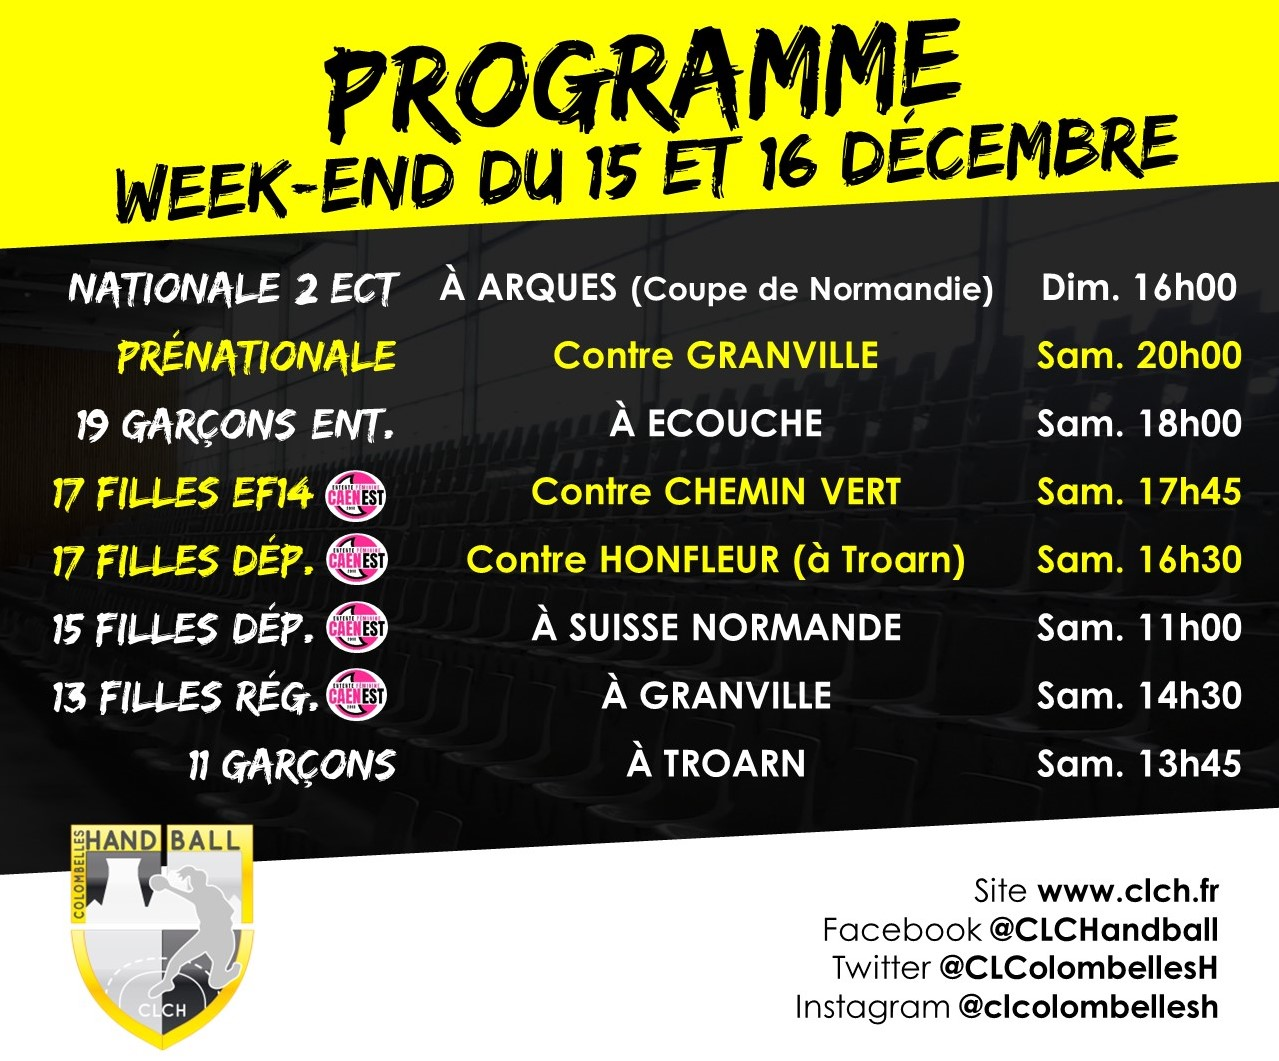 PROG WEEKEND 15-16 DEC